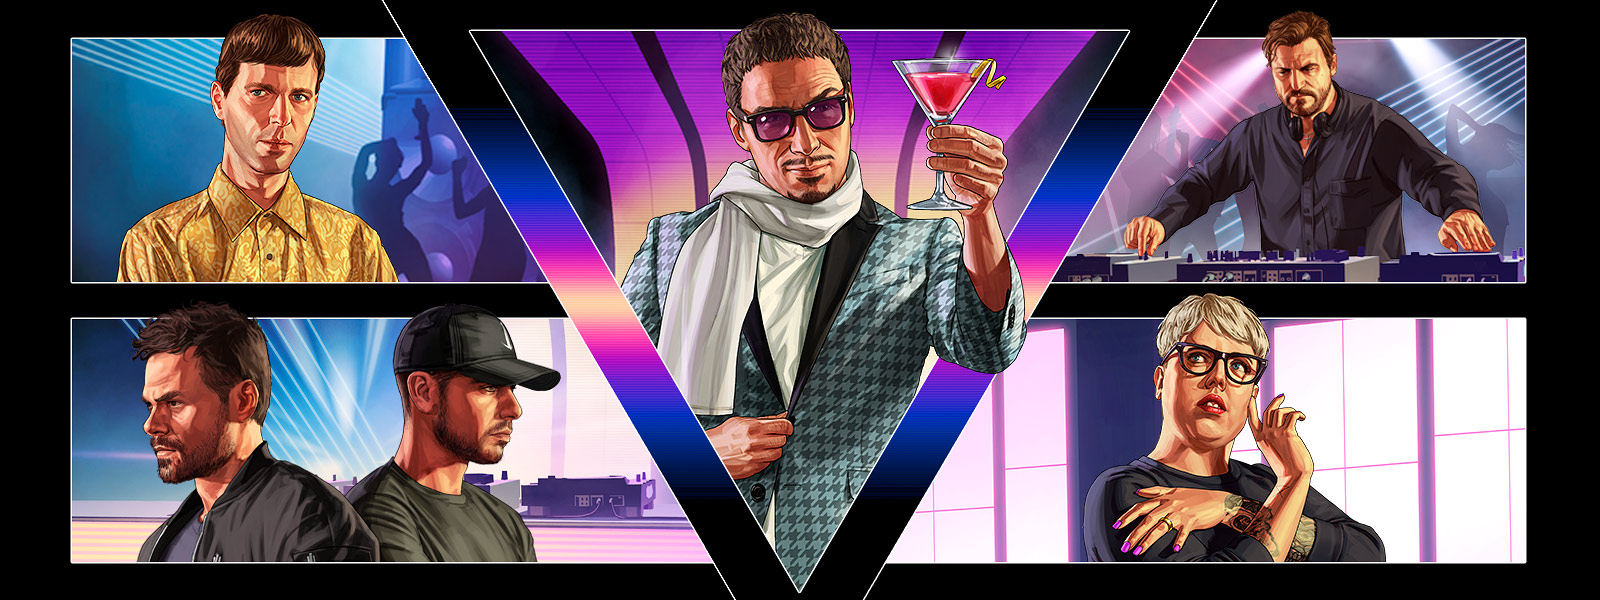 Grand Theft Auto Online After Hours, carosello di personaggi in un nightclub